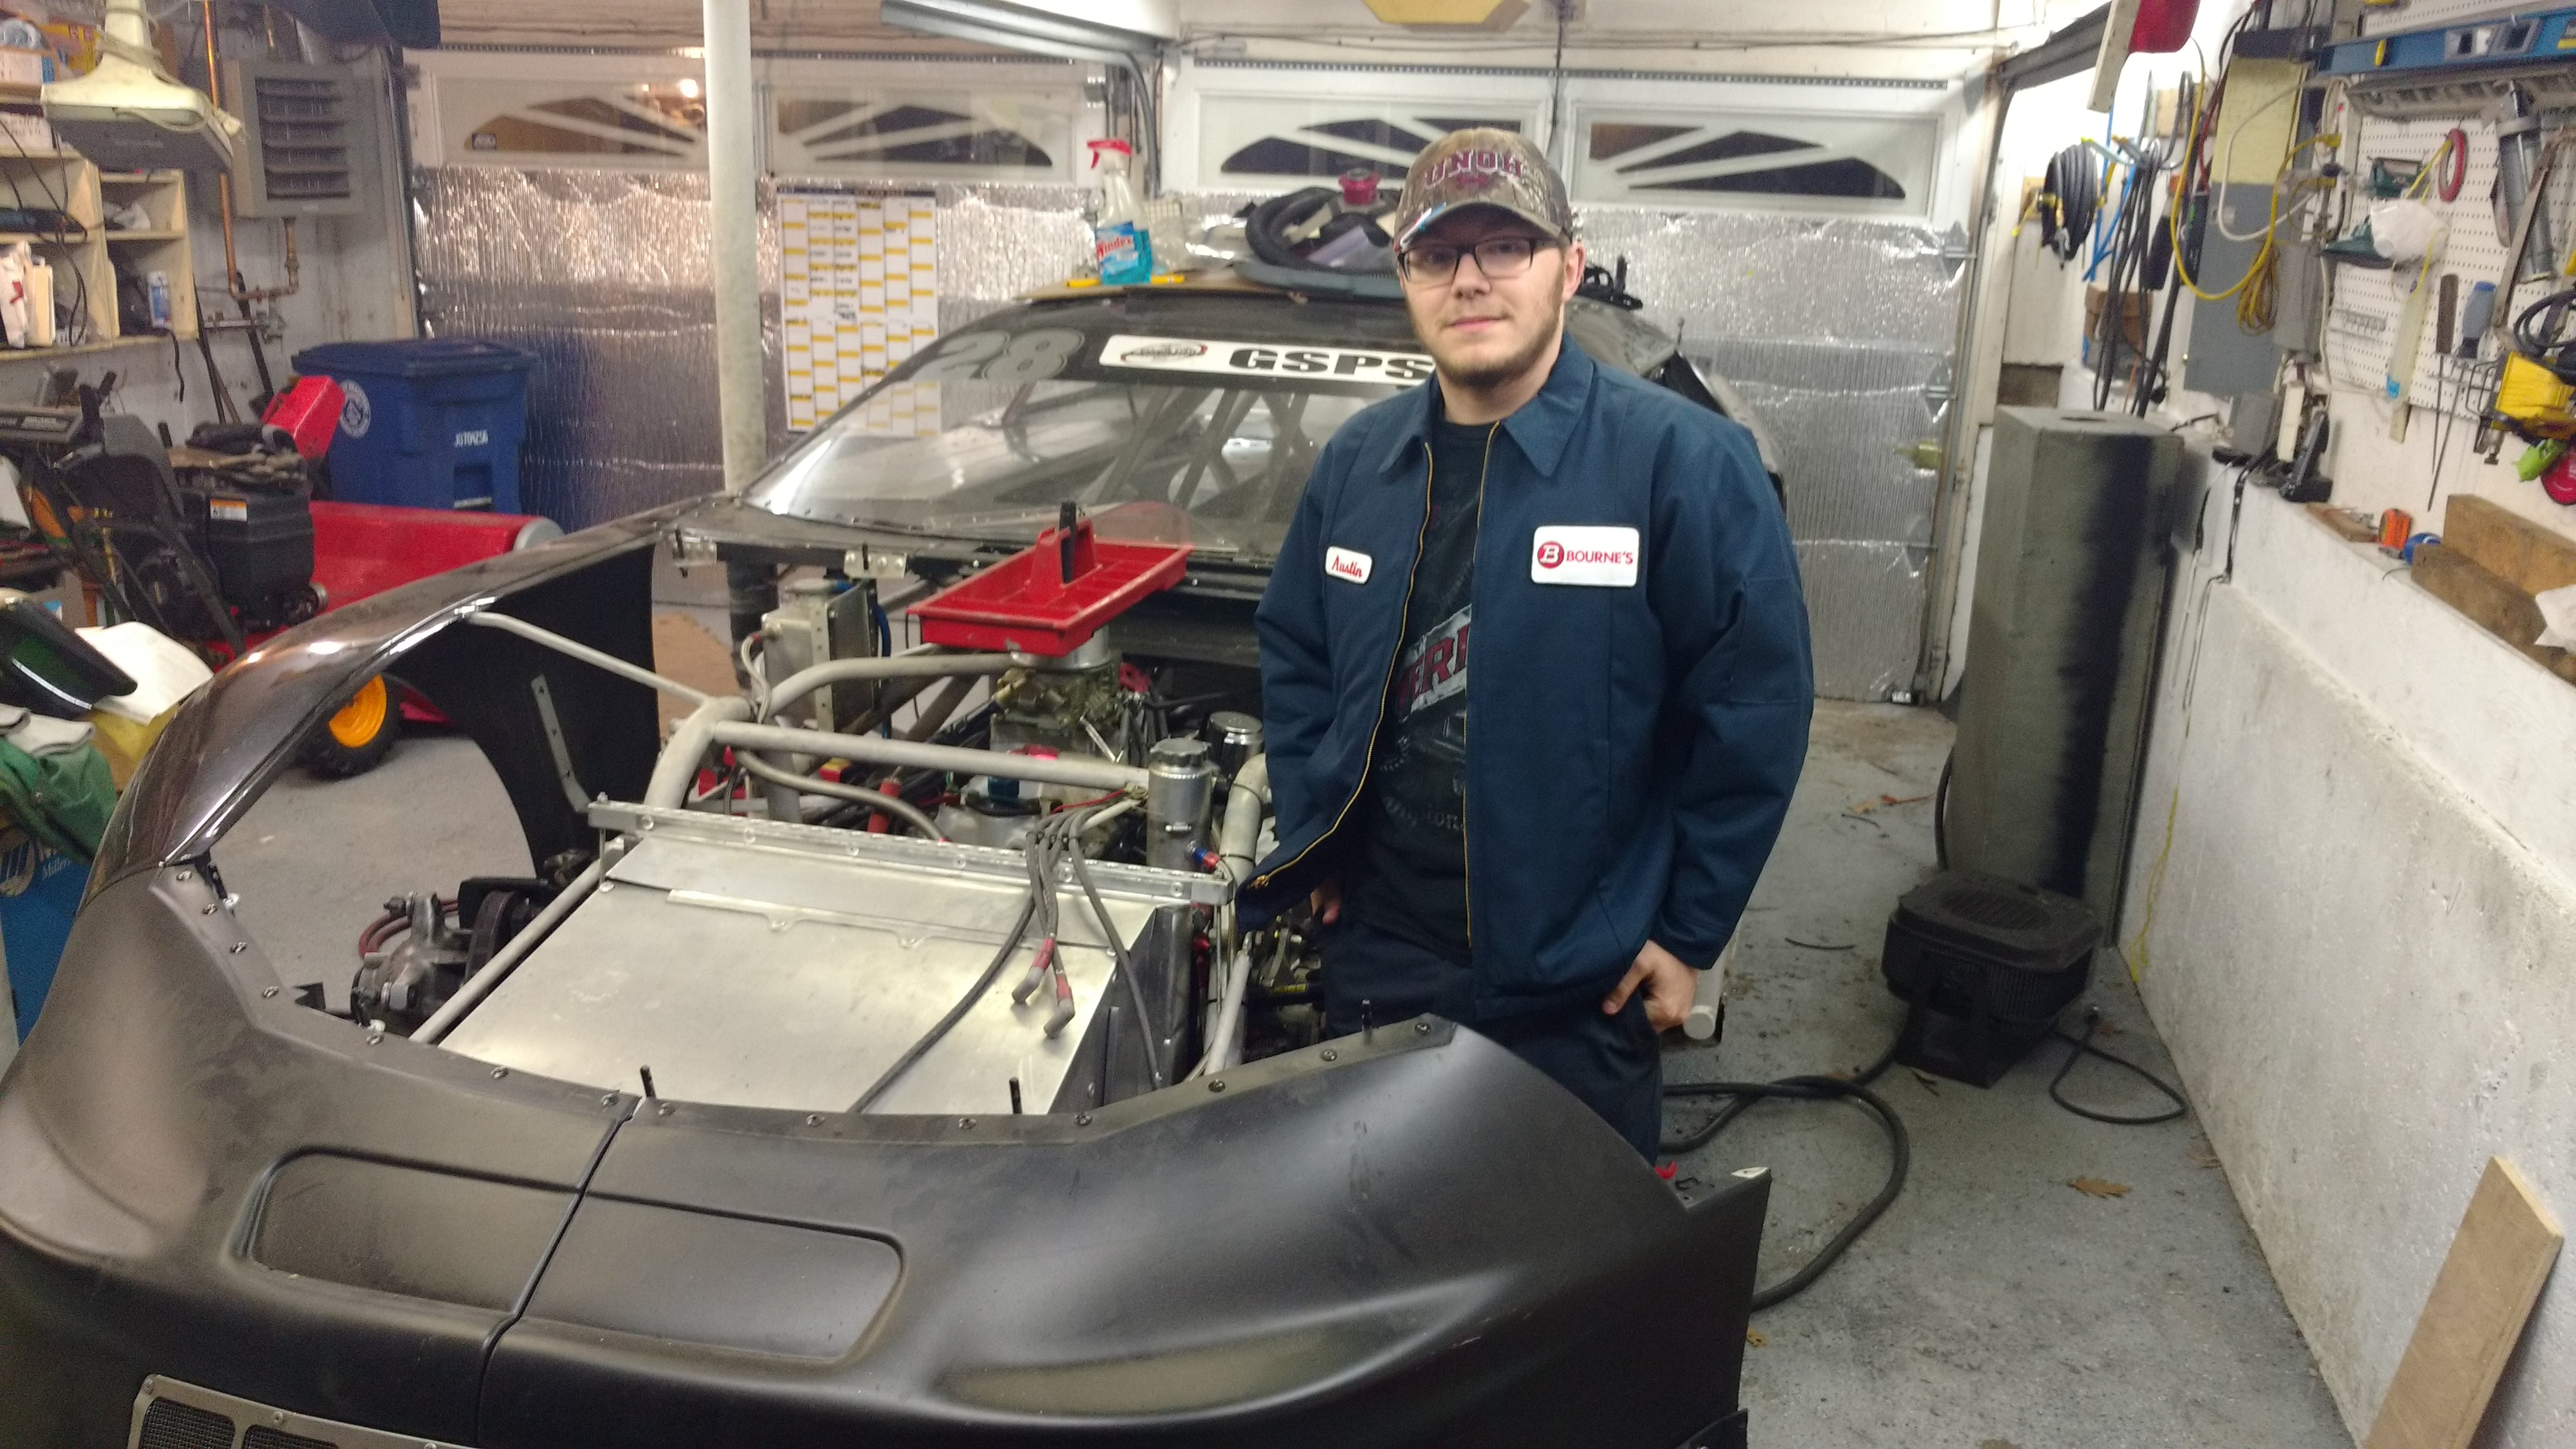 Car Racing Enthusiast Receives Scholarship for Exceptional Knowledge